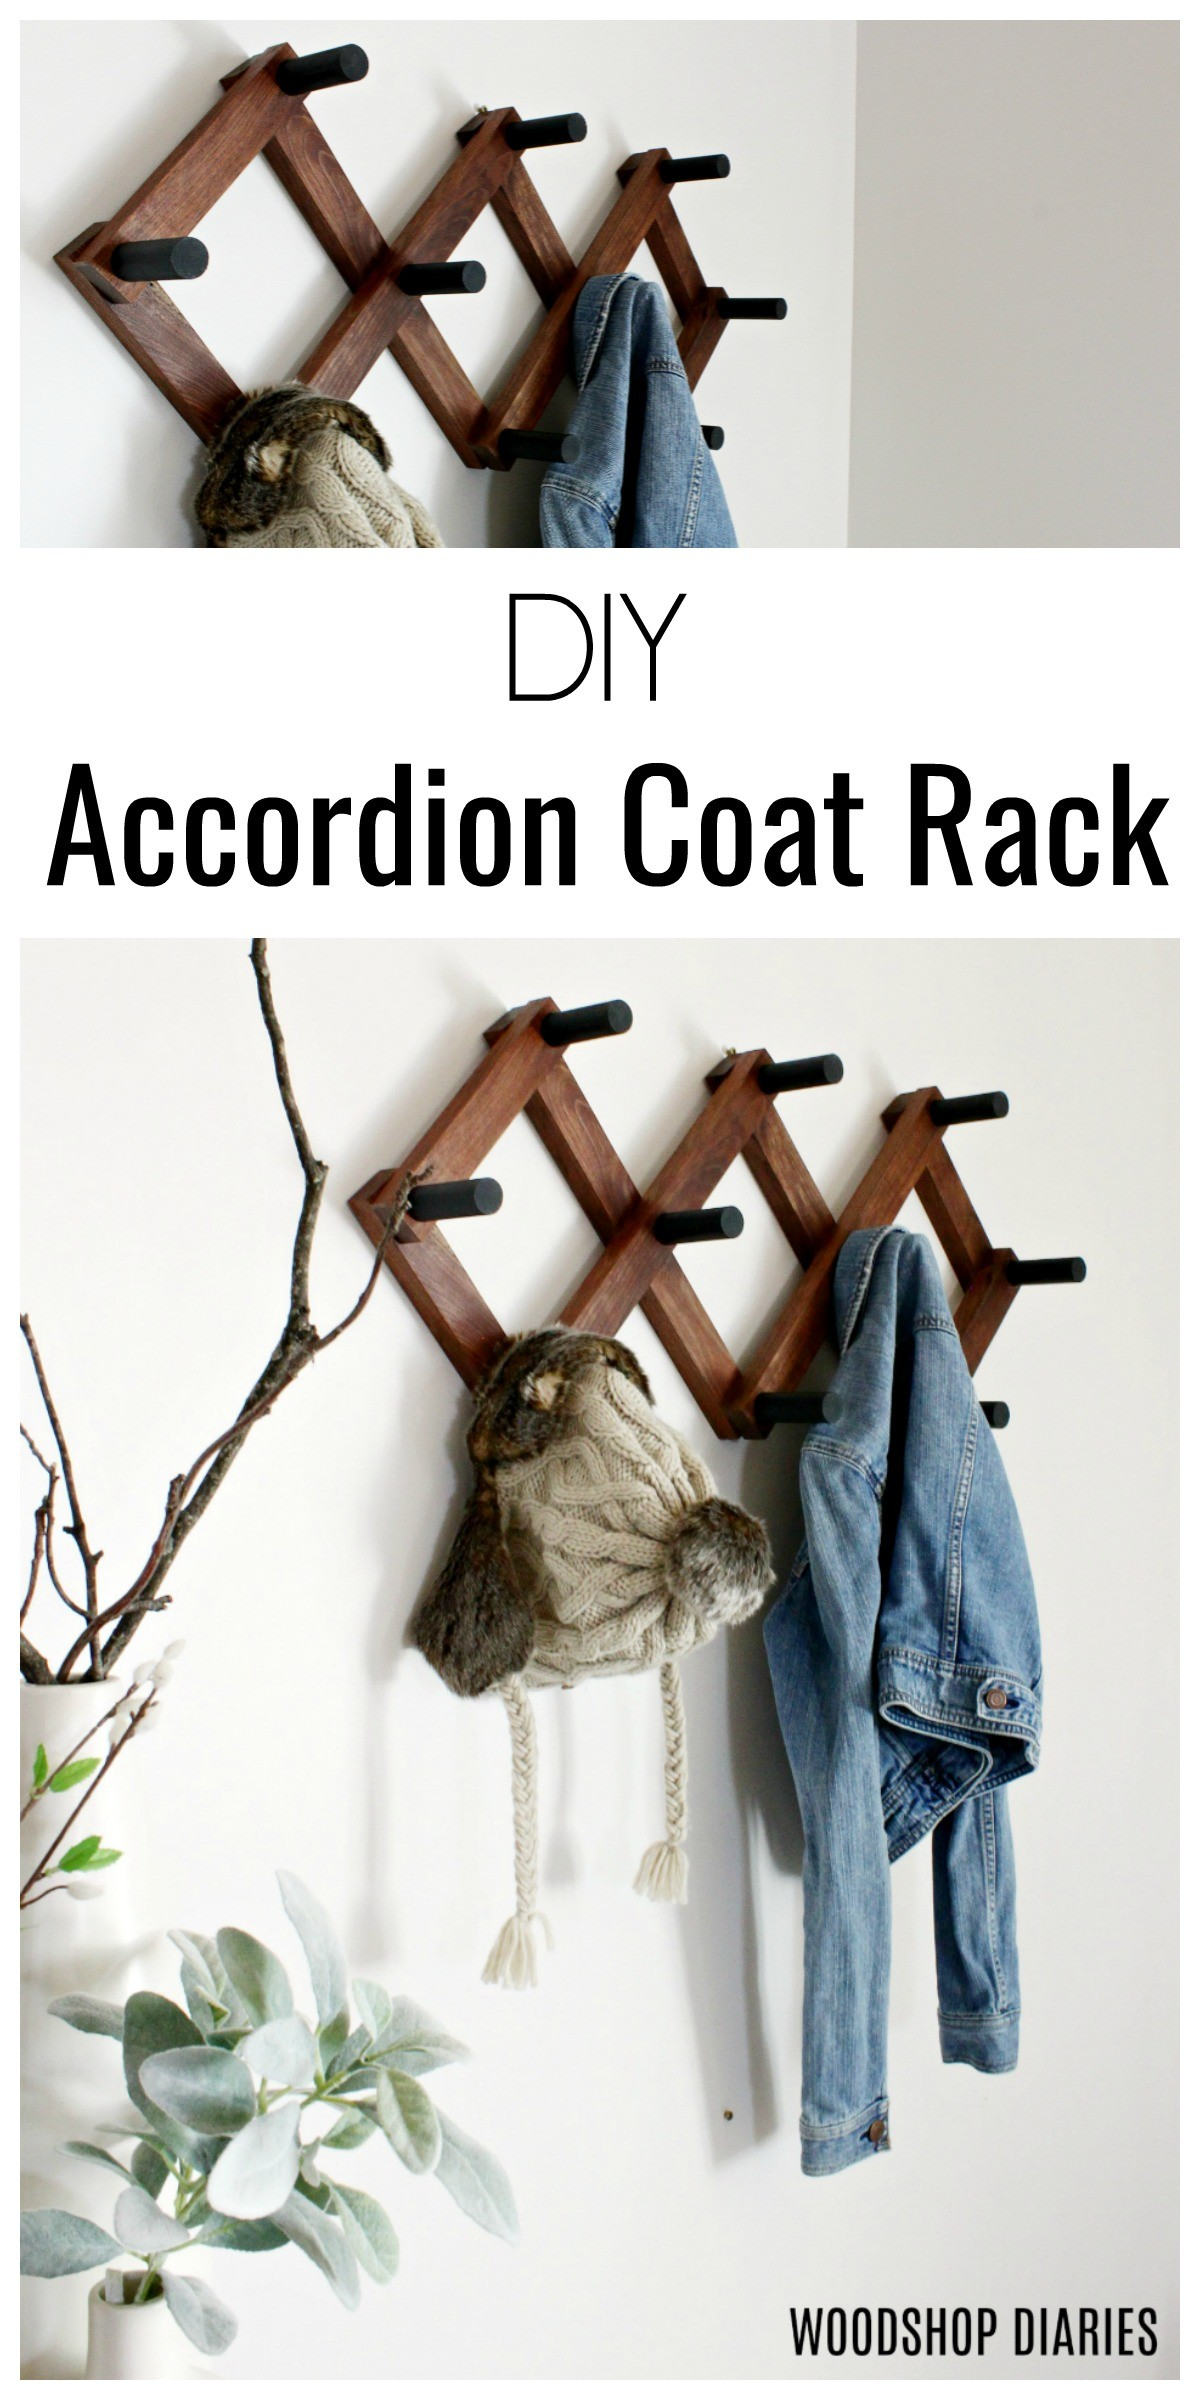 How to Build a DIY Accordion Coat Rack with Two Tools and One Board!